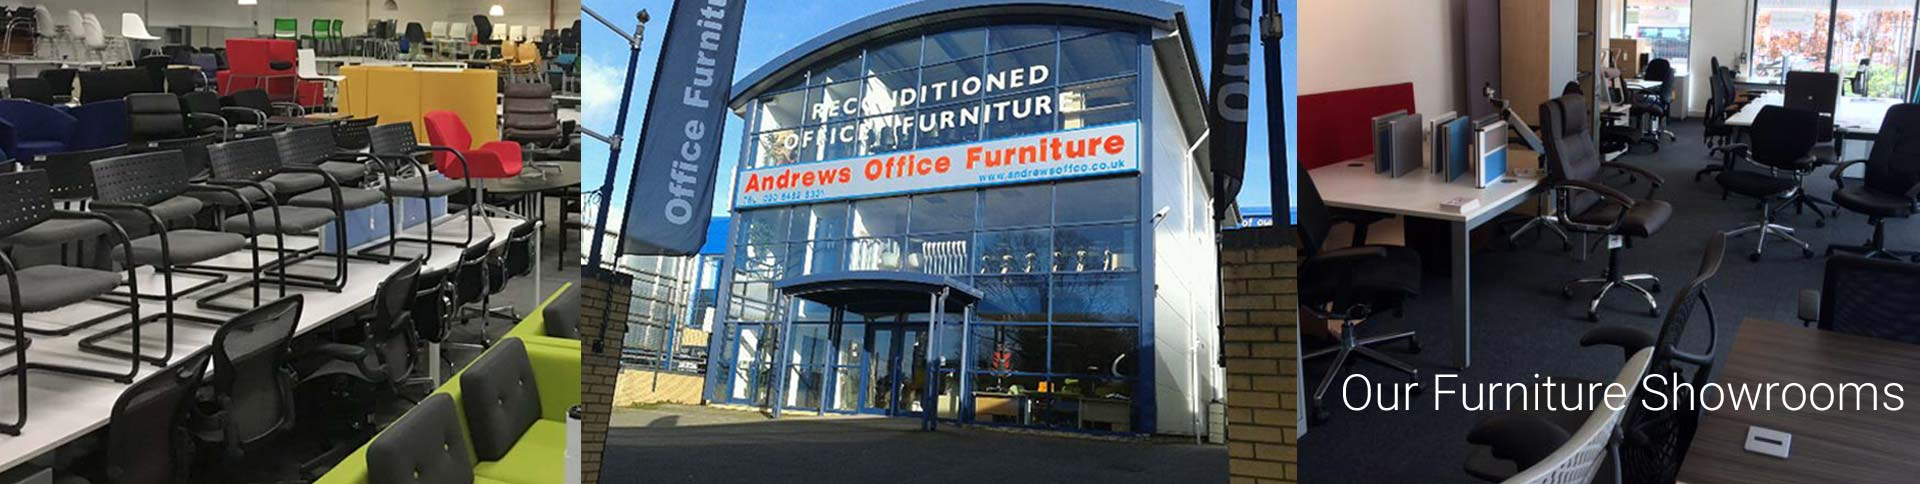 andrews office furniture office furniture desks chairs rh andrewsofficefurniture com